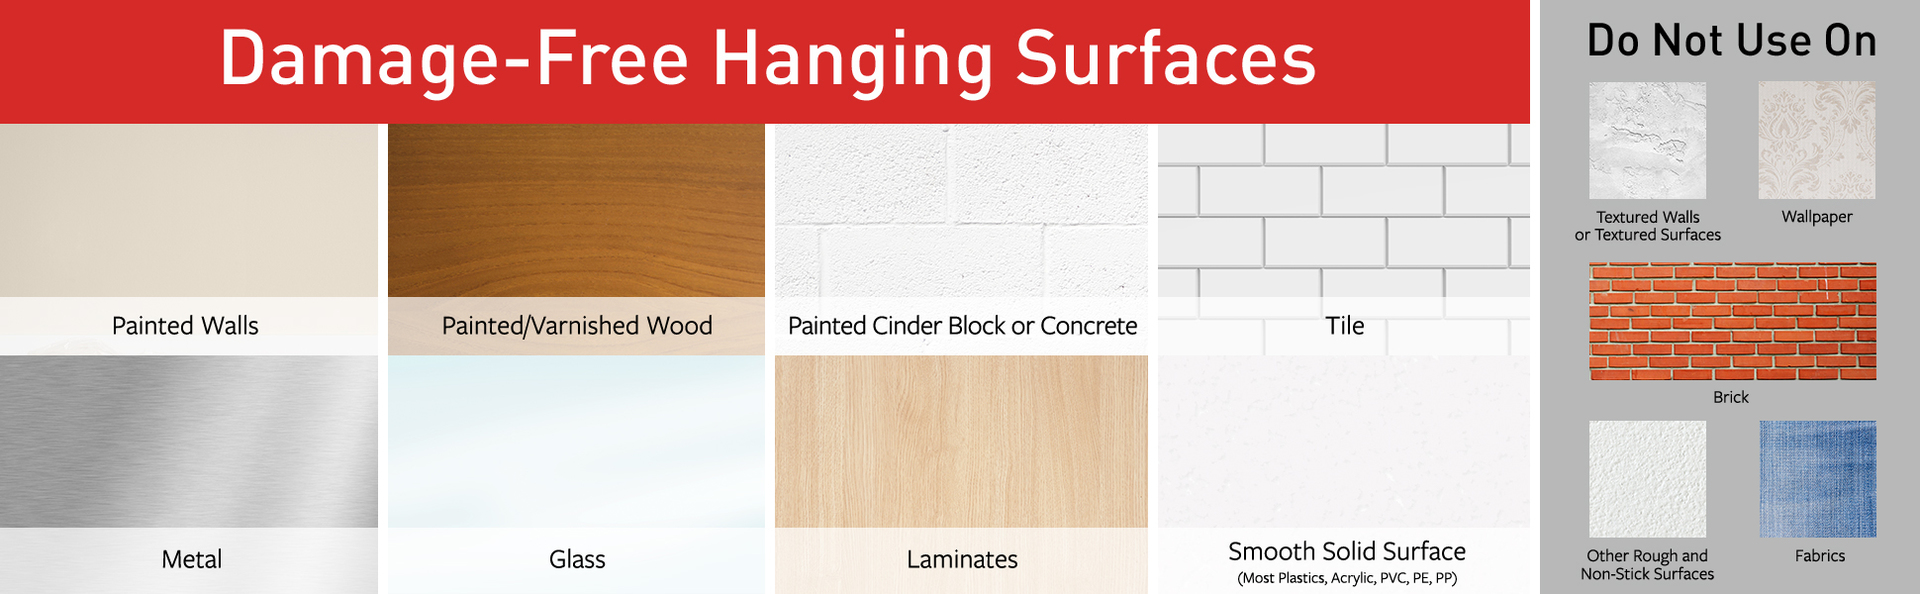 approved surfaces: Painted walls, wood, cinder block; Tile; metal; glass; laminates; smooth surface